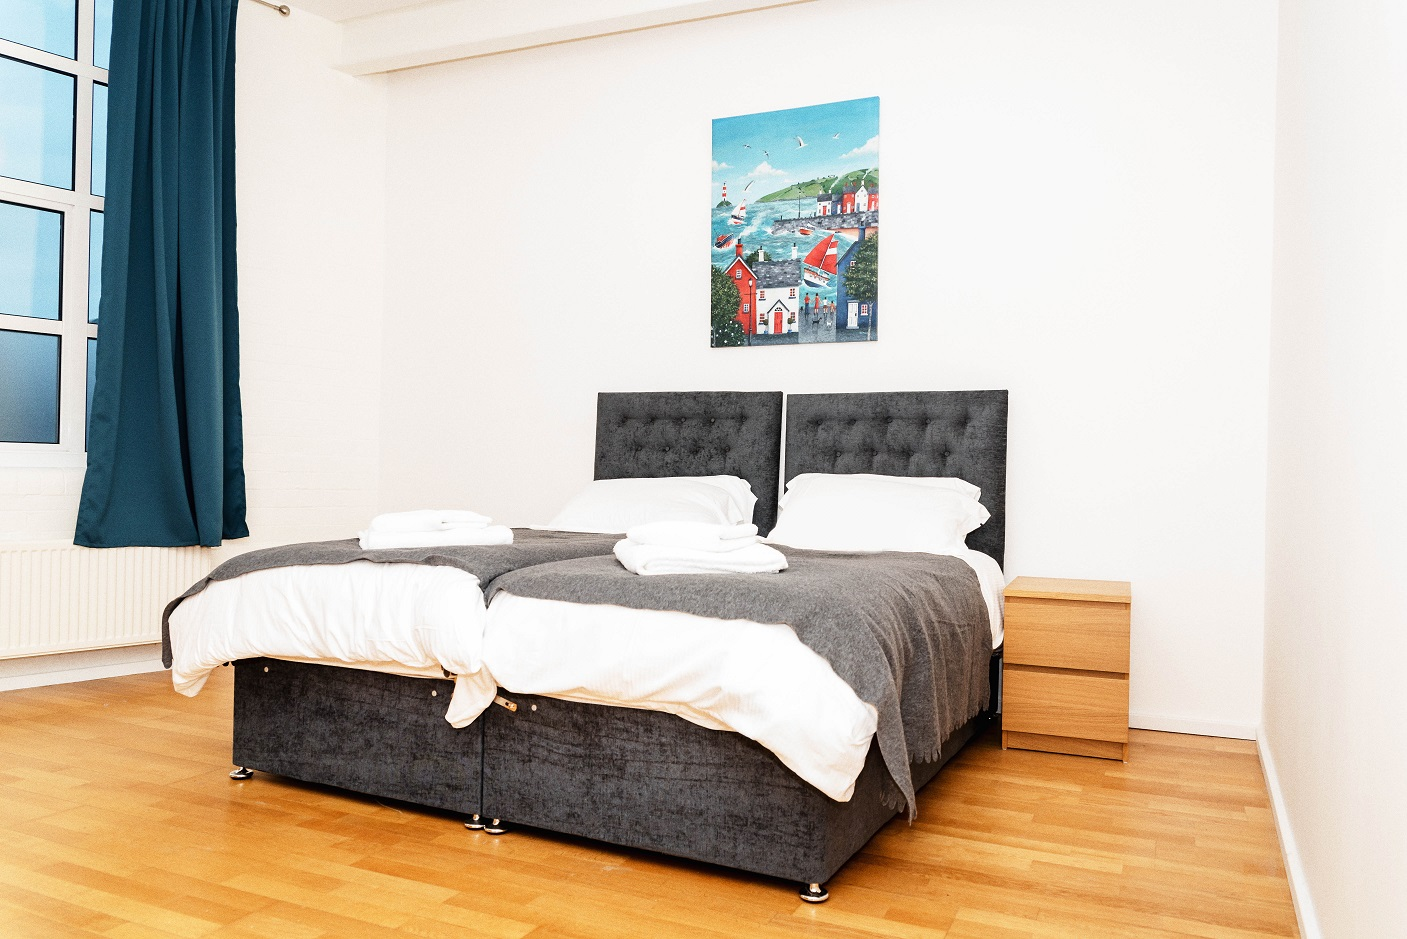 Bedroom at Radford Apartment, Basford, Nottingham - Citybase Apartments